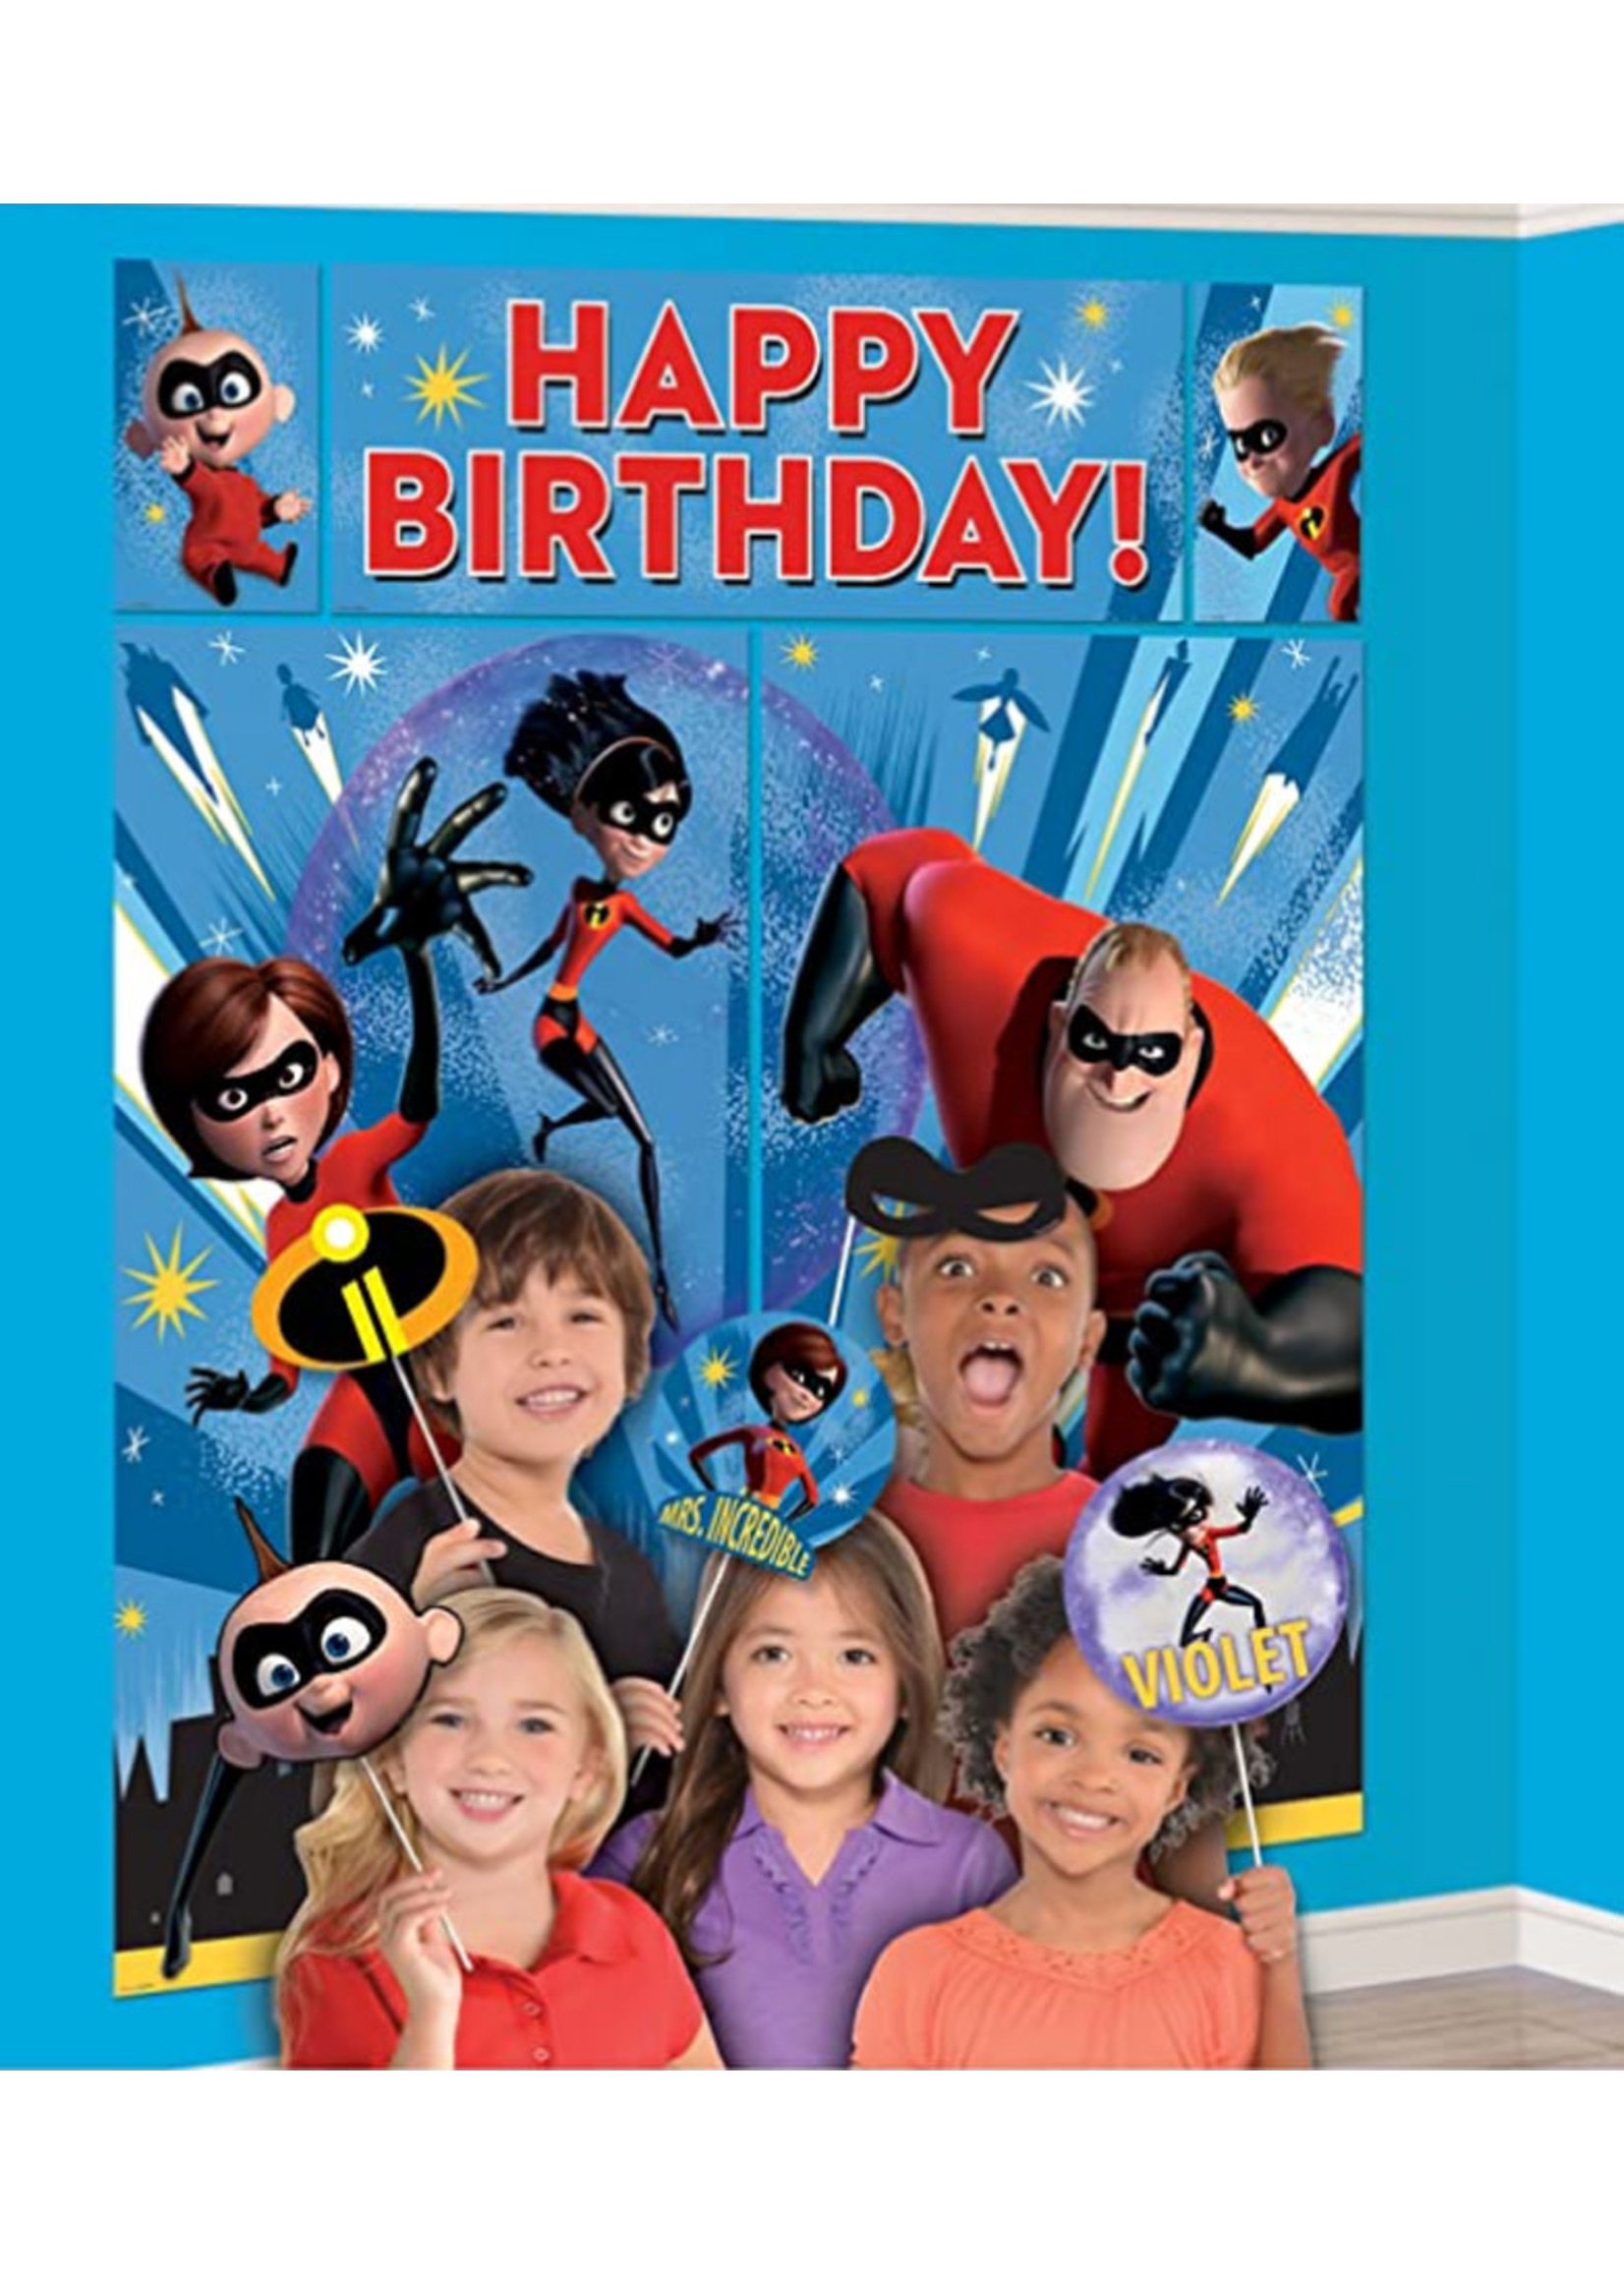 Incredibles 2 Scene Setter with Photo Booth Props